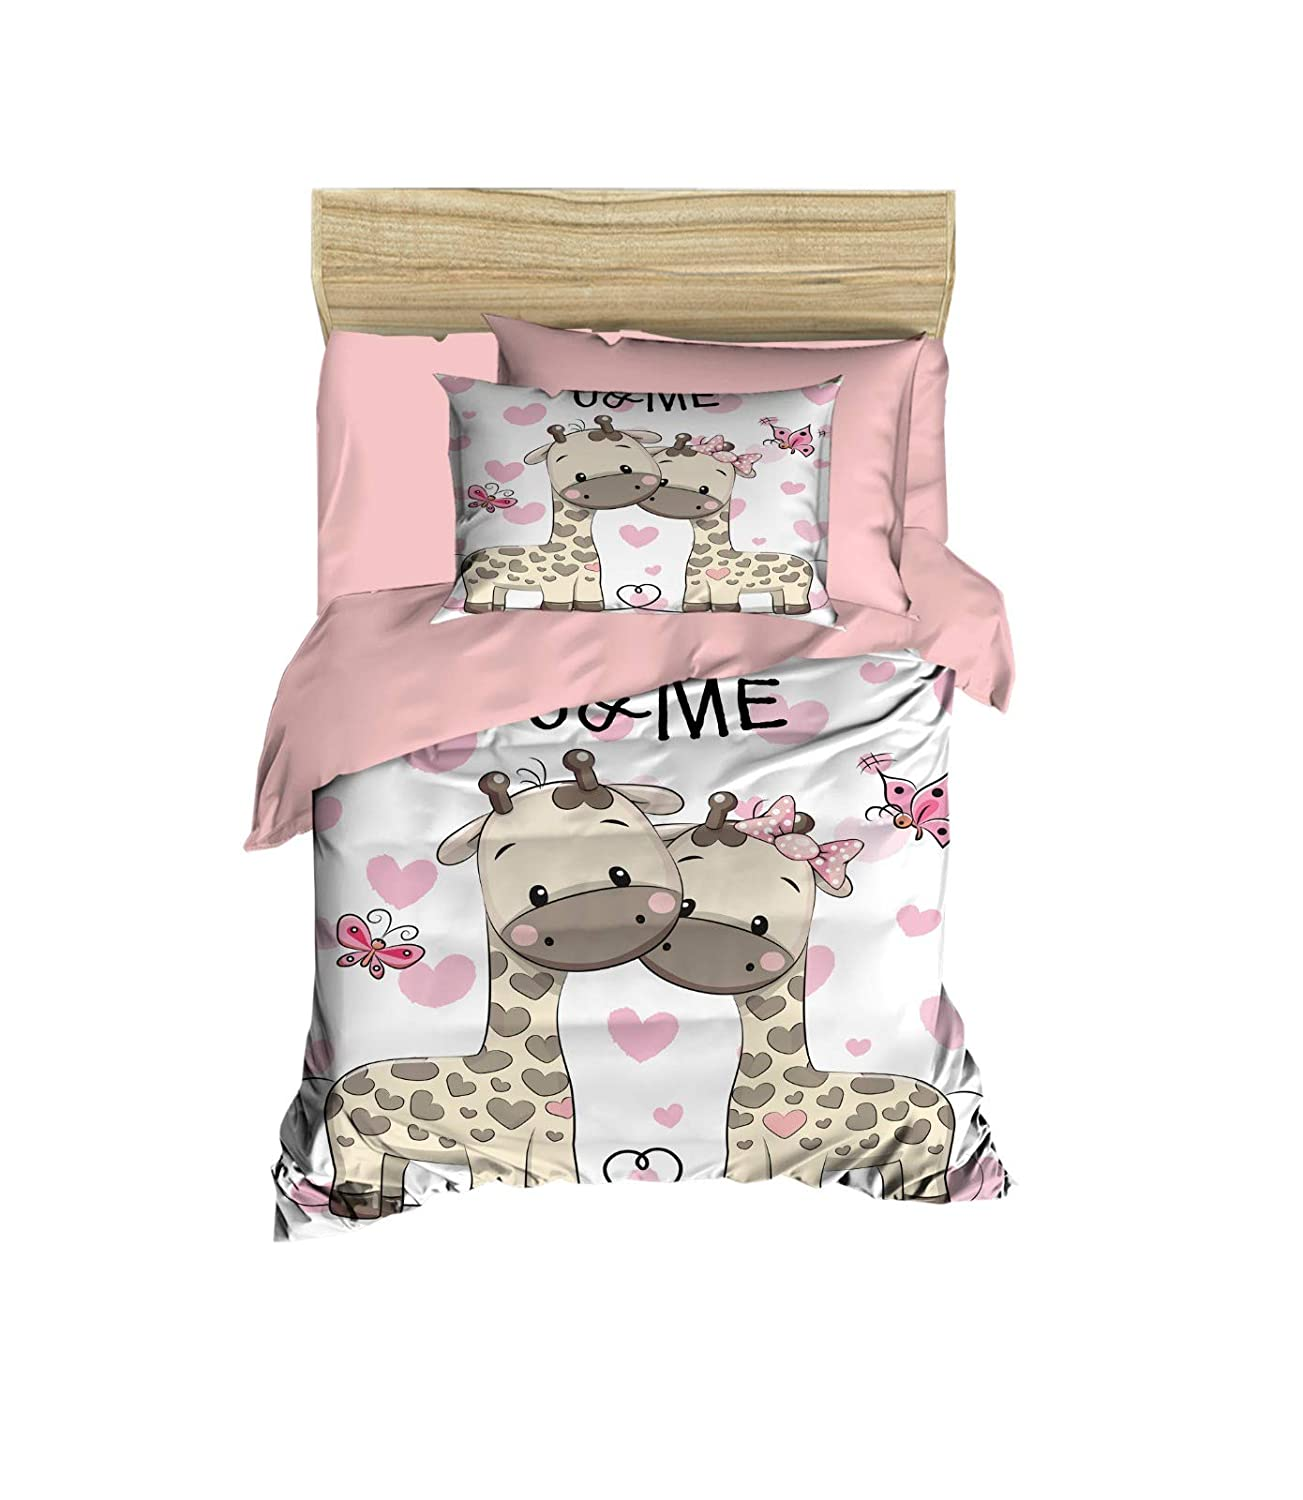 100% Cotton Baby Bedding Giraffe Themed Nursery Baby Bed Set, Toddlers Crib Bedding for Baby Girls, Duvet Cover Set with Comforter, 5 Pieces 71Rl0dYuG4L